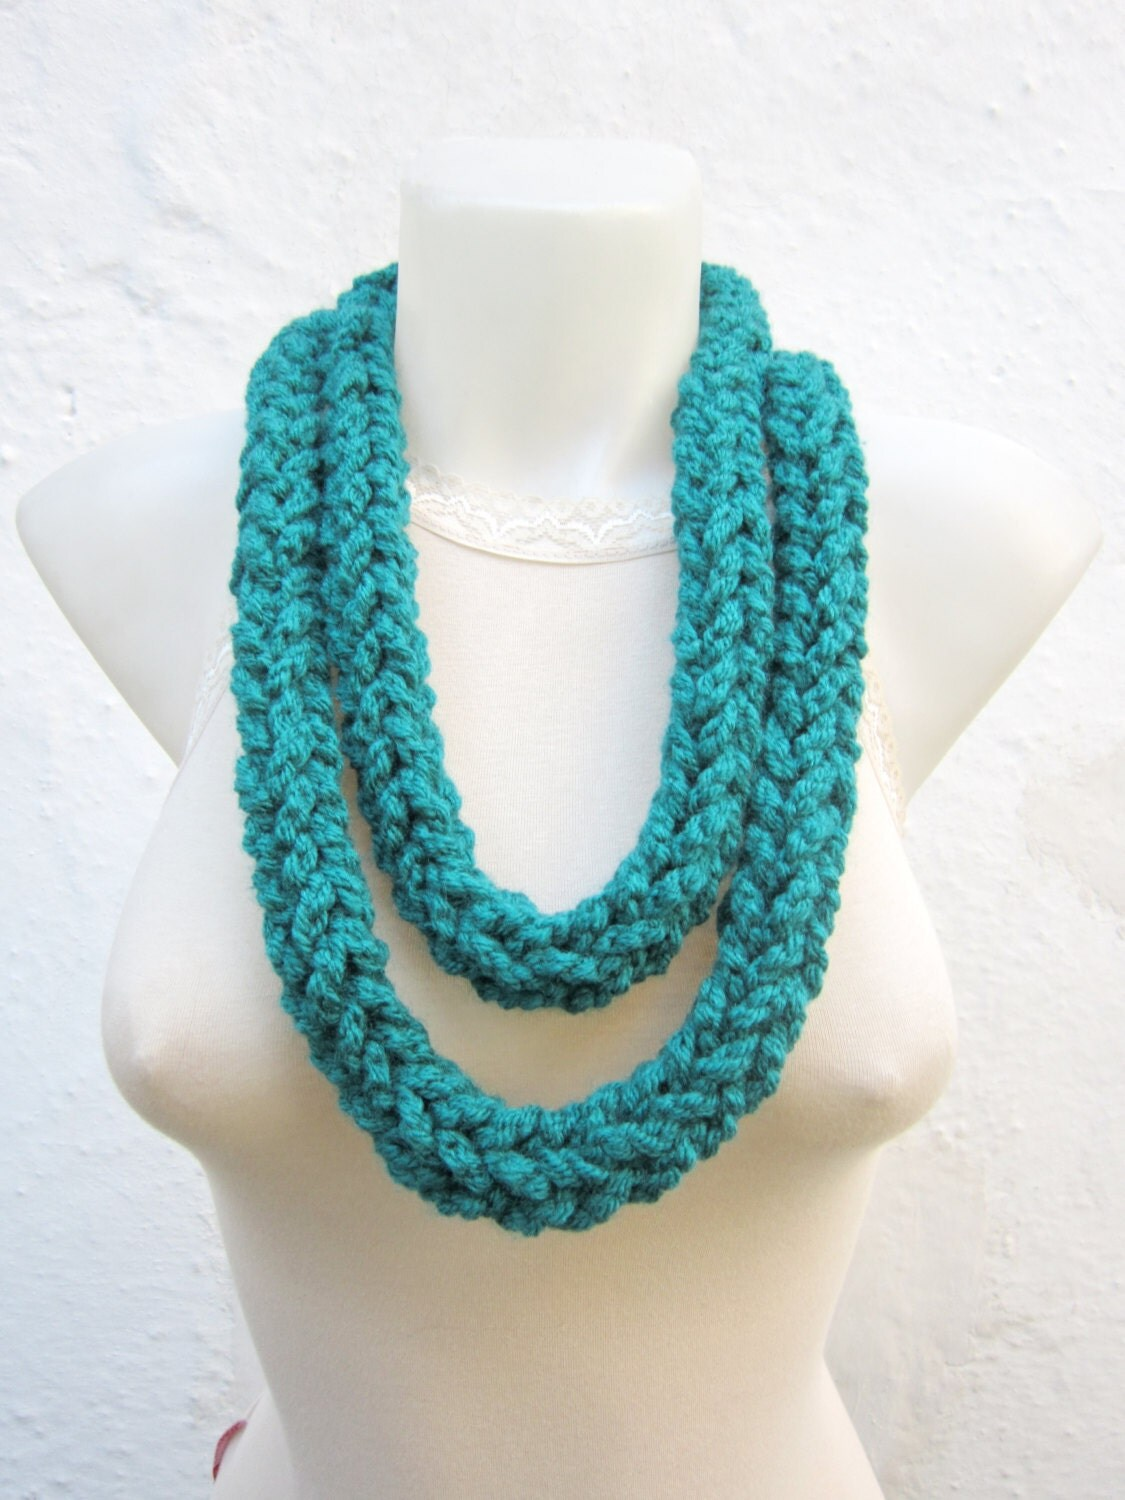 This tutorial shows you how to finger crochet a chain stitch and double crochet stitches. This gives you a solid foundation for learning other basic crochet stitches. The tutorial also covers some tips to help you master this technique. Yarn Chain Scarf.